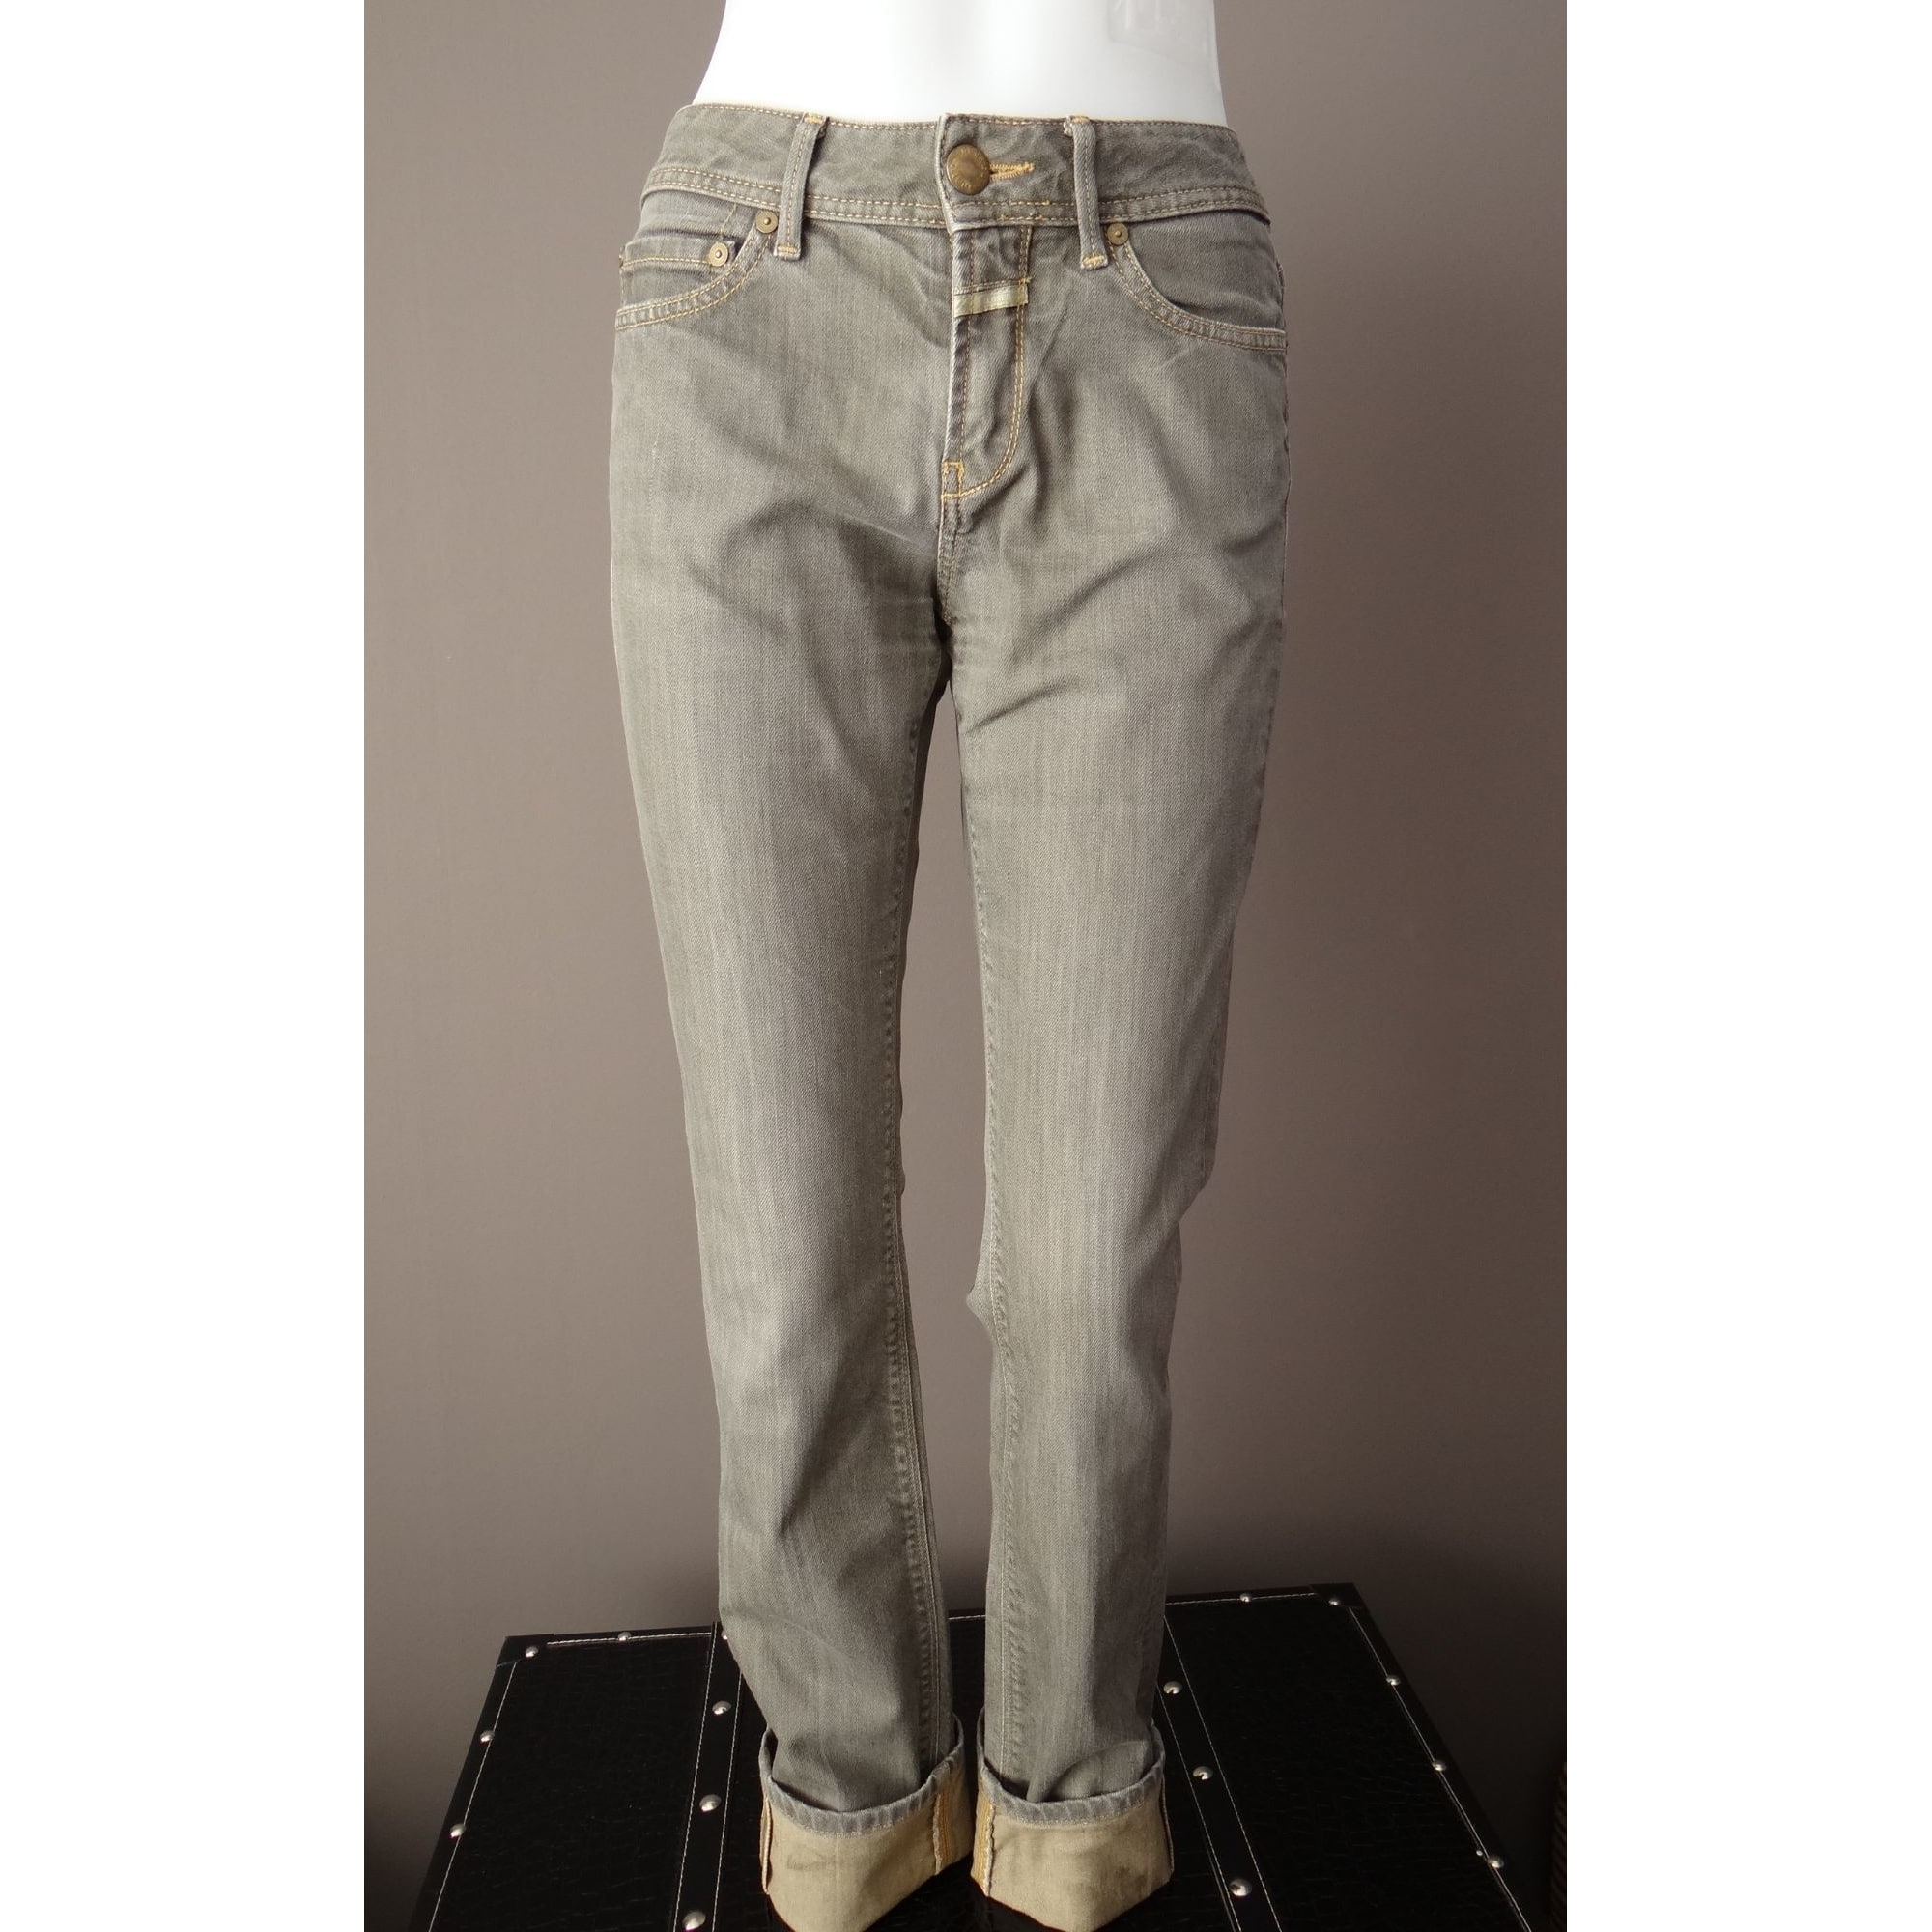 Straight-Cut Jeans  CLOSED Grau, anthrazit